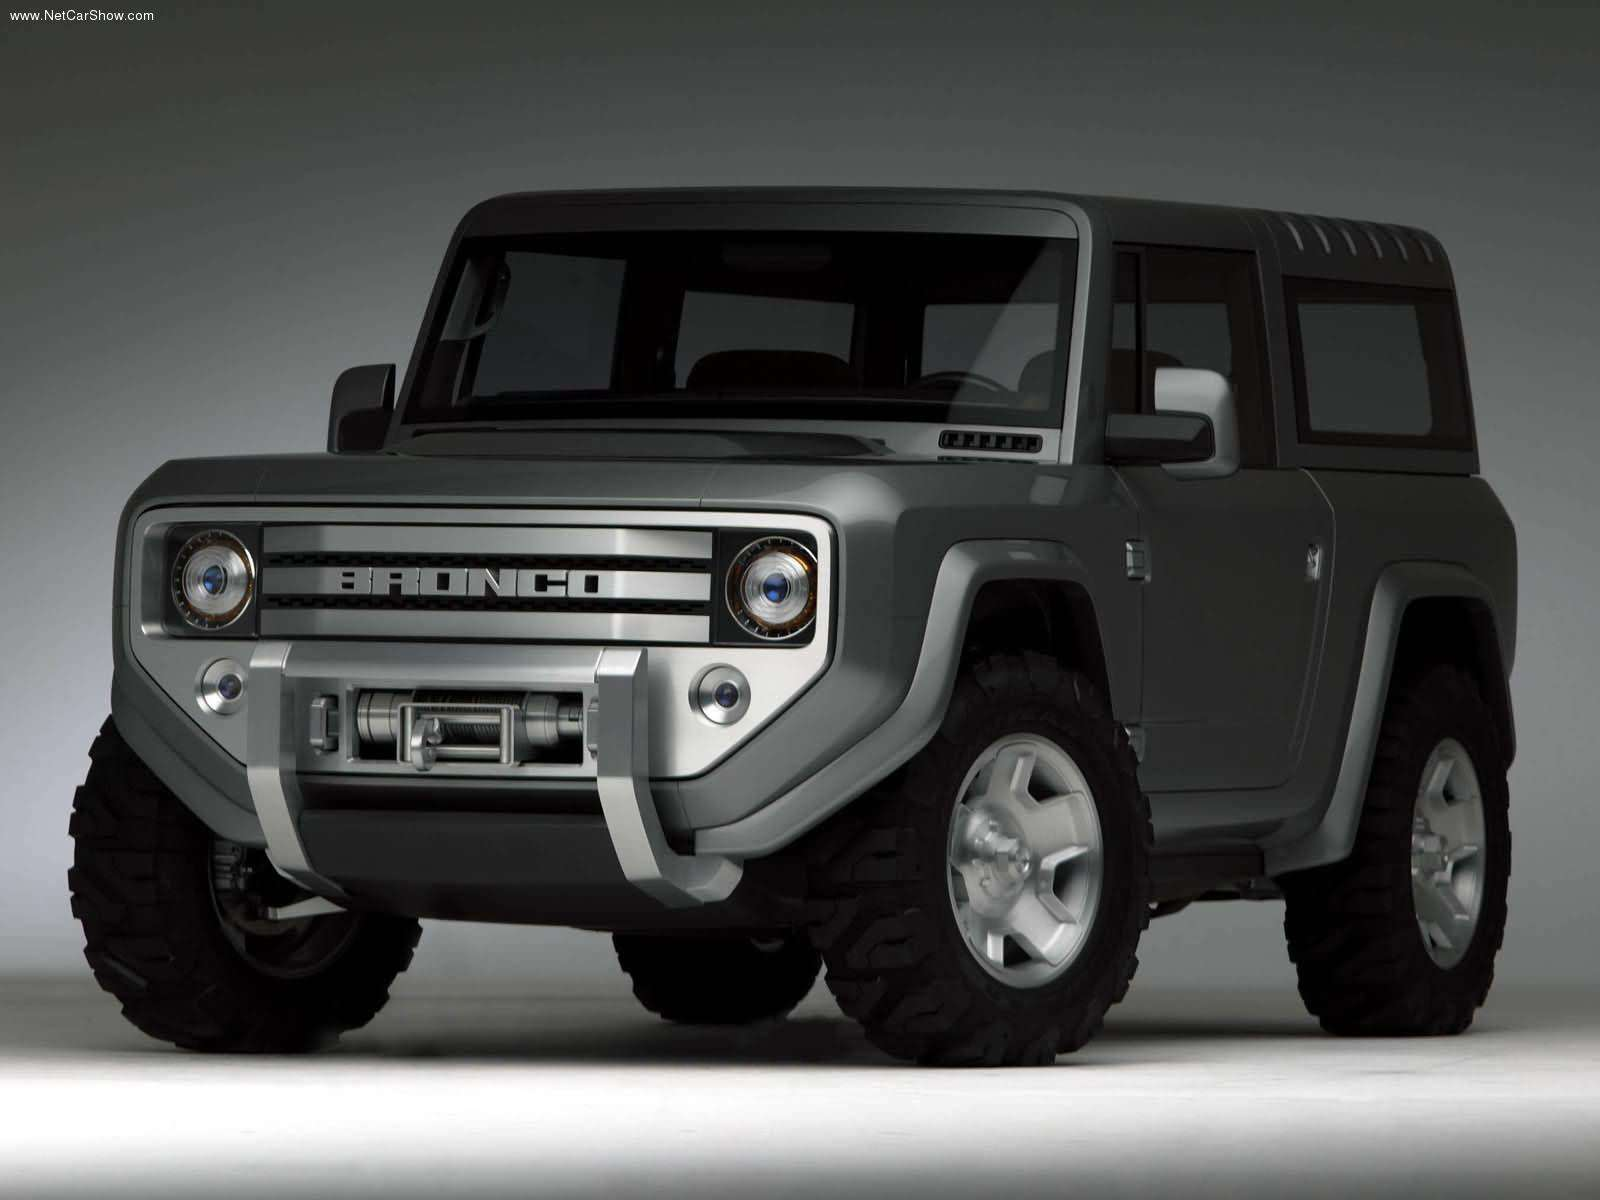 jeff green Wallpapers: FORD BRONCO WALLPAPERS